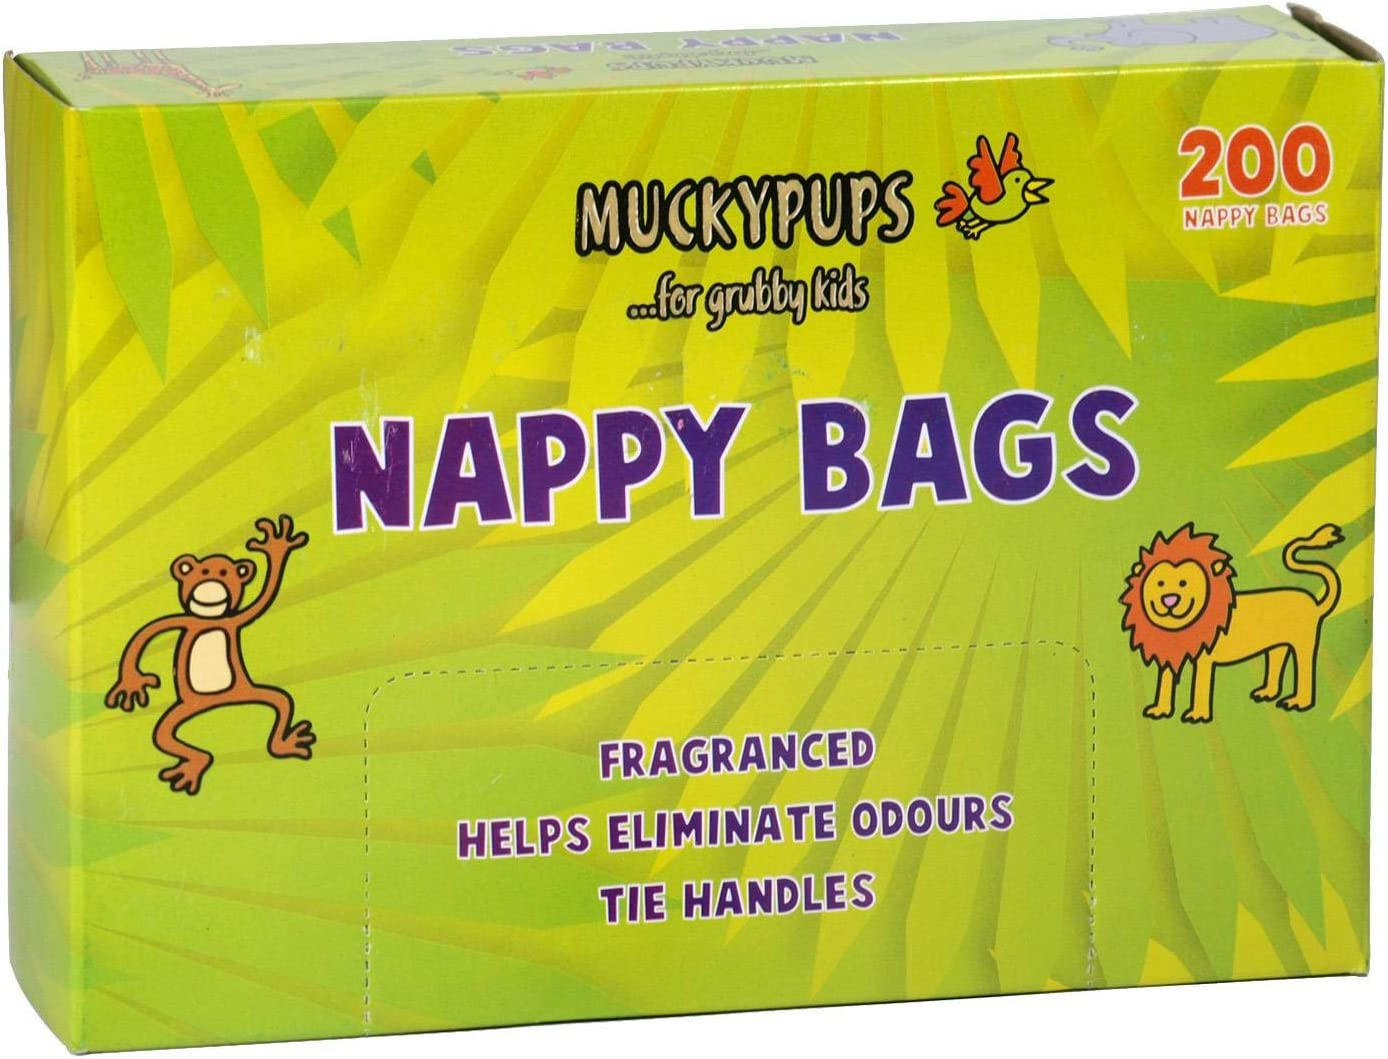 Muckypups Disposable Nappy Bags Fragranced /& Tie Handles 200 x Mucky Pups Nappy Sacks per Pack